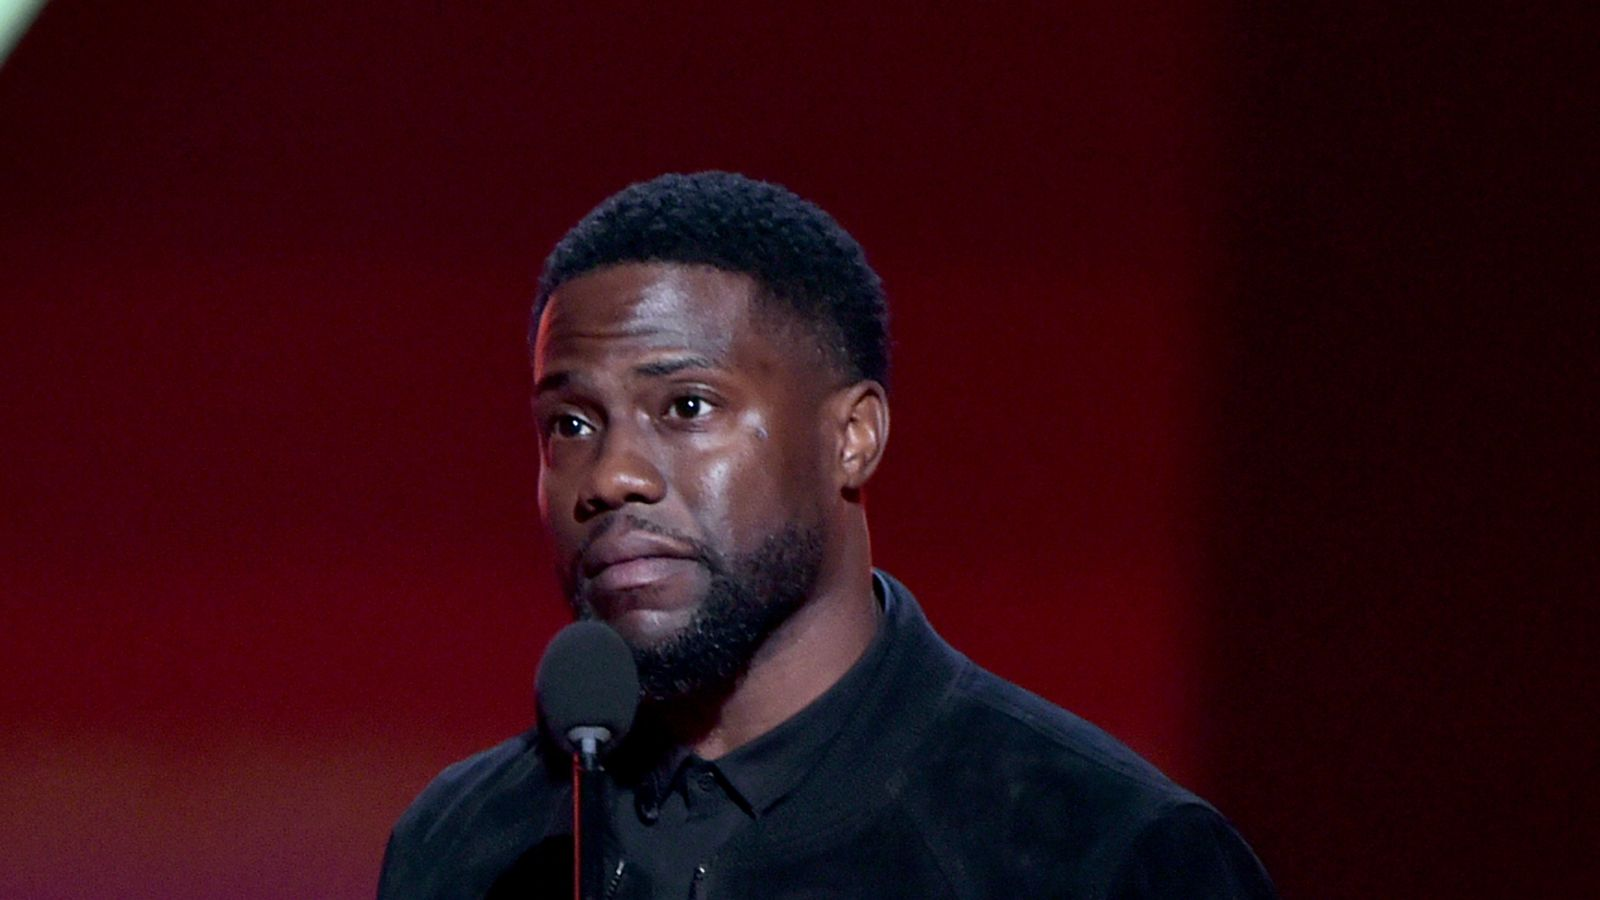 Kevin Hart makes first appearance since crash saying he's grateful to be there - Sky News